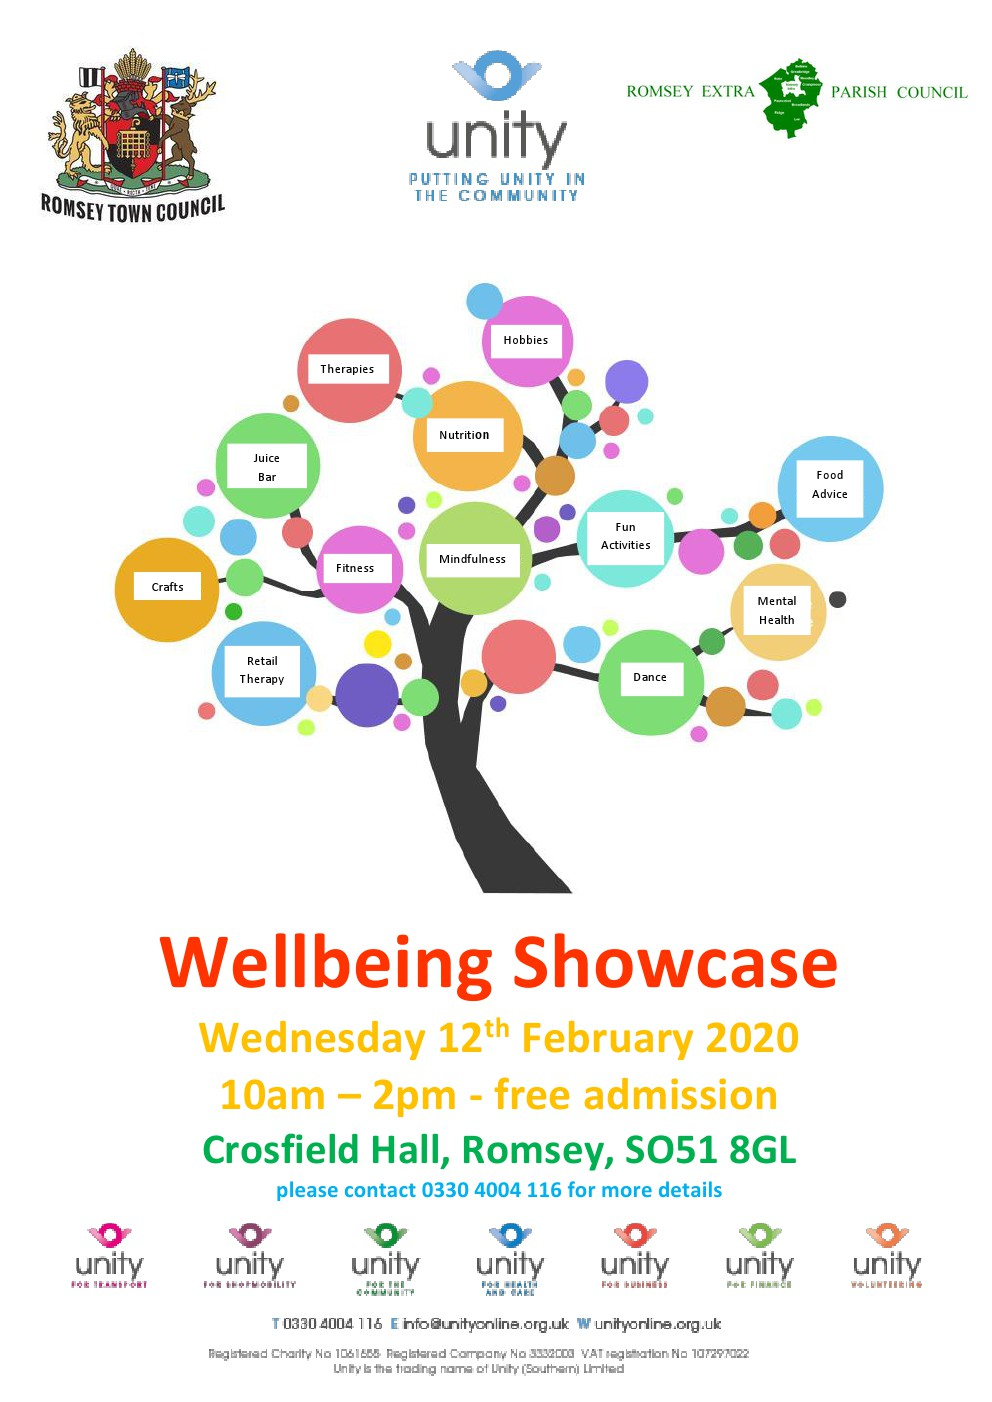 Well-being Showcase